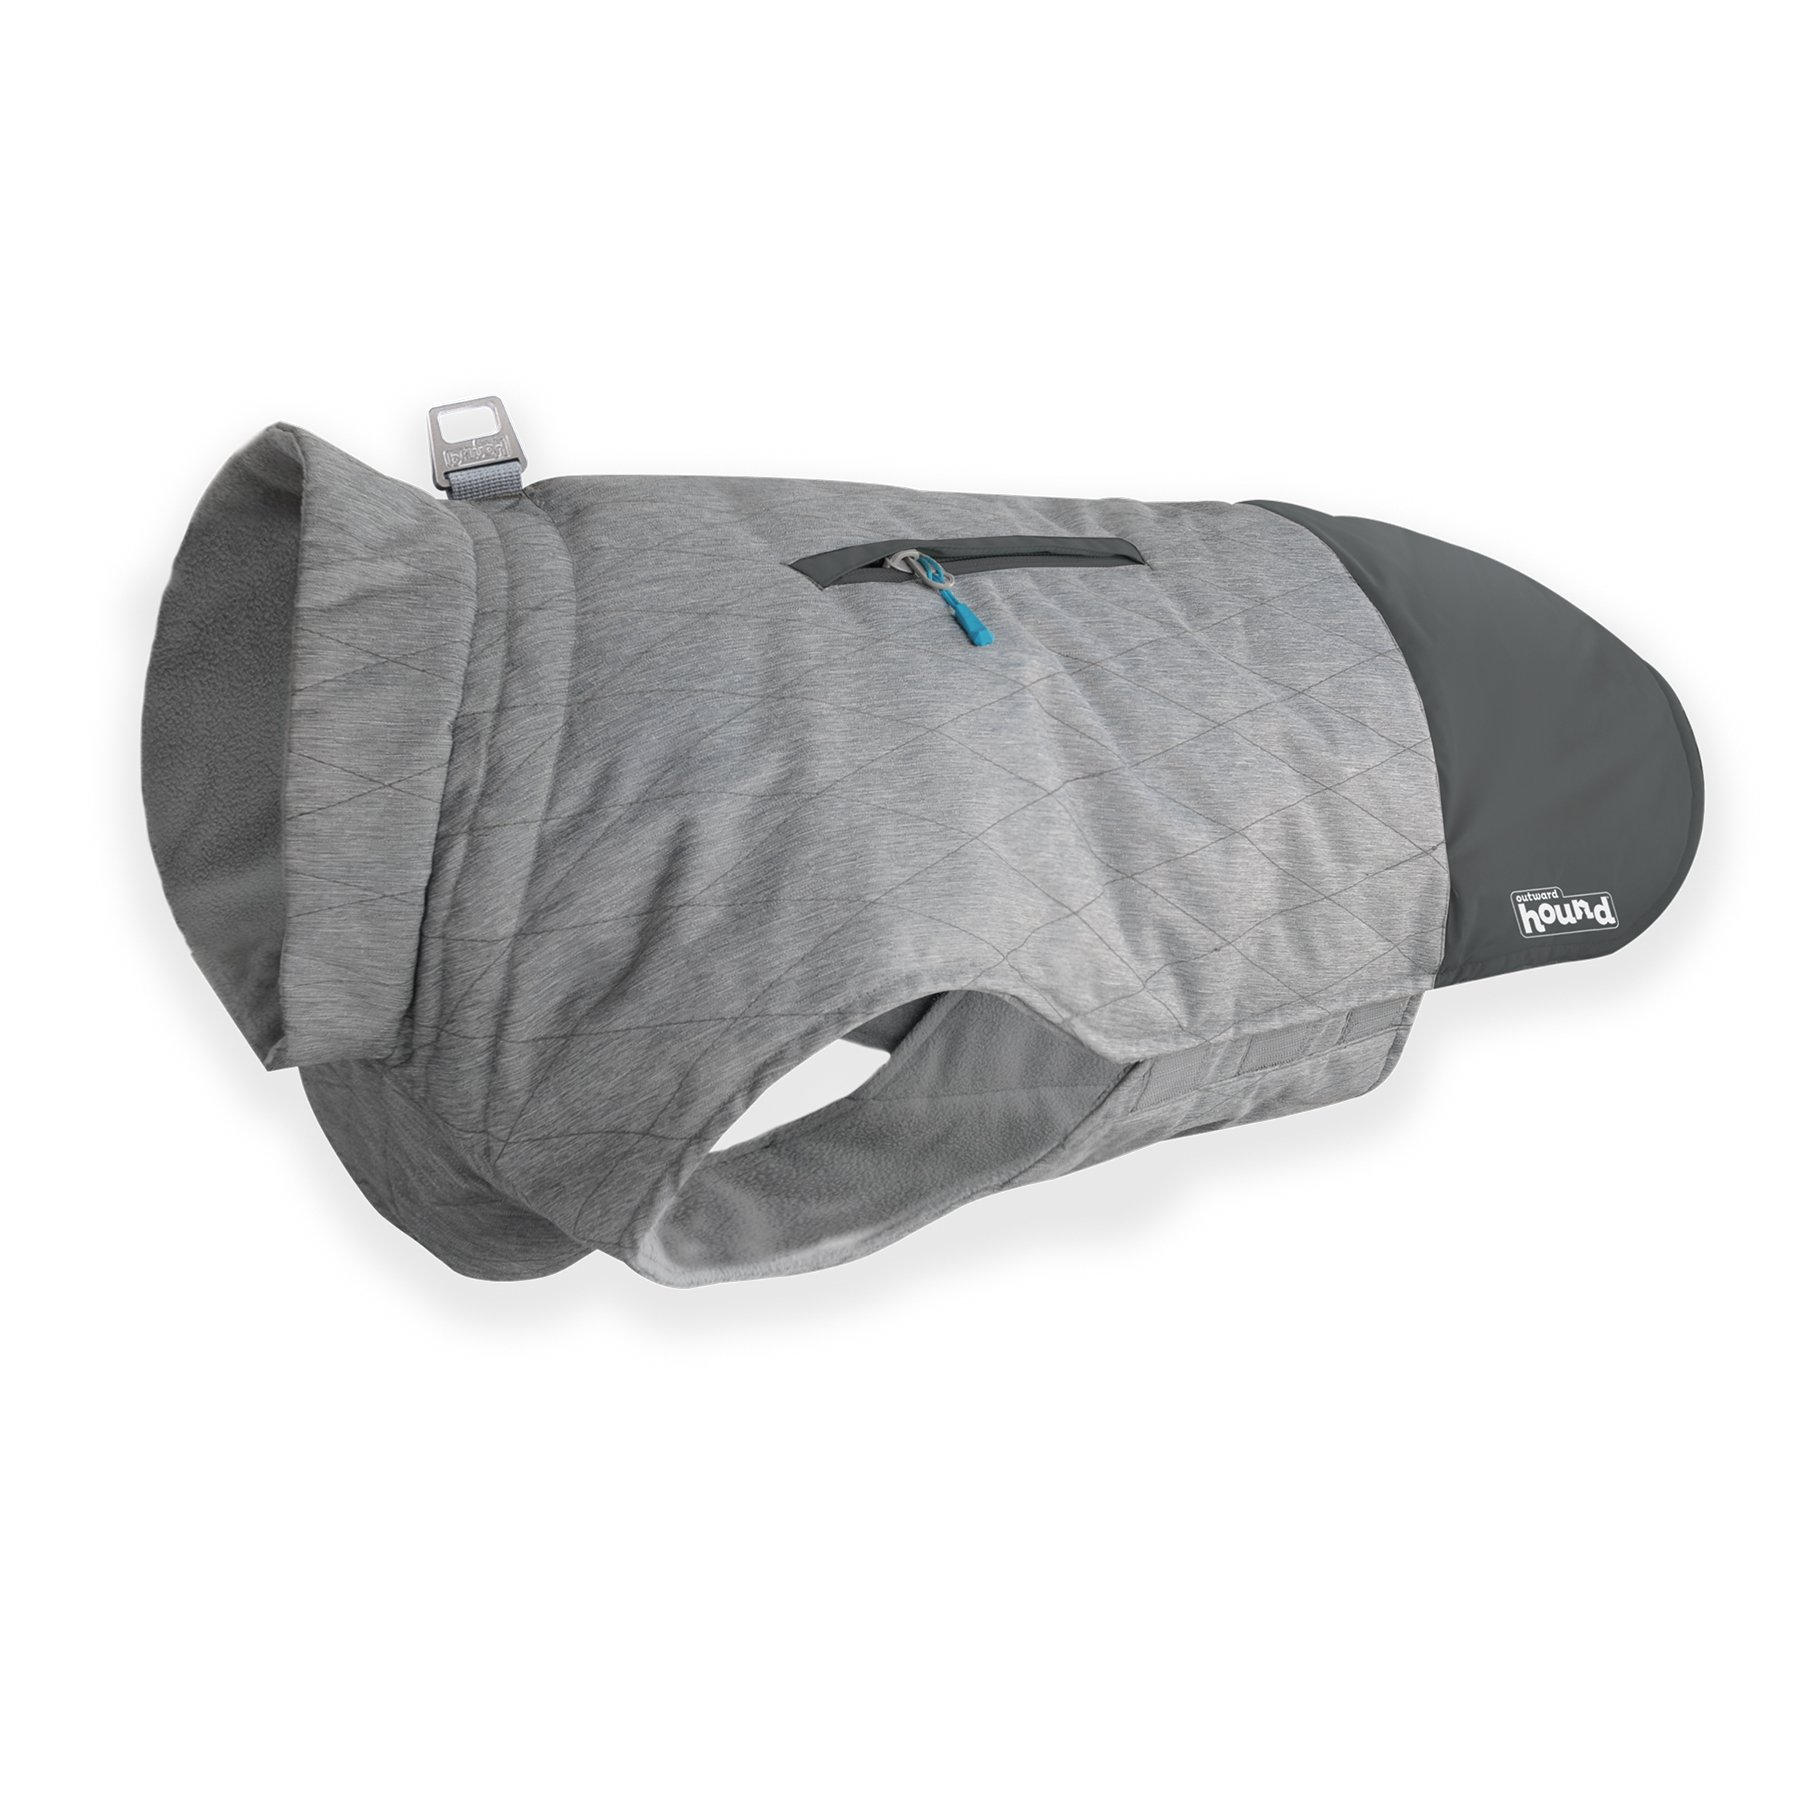 Silverton Weatherproof Thinsulate Warm Coat for Dogs by Outward Hound, Grey, X-Large by Outward Hound